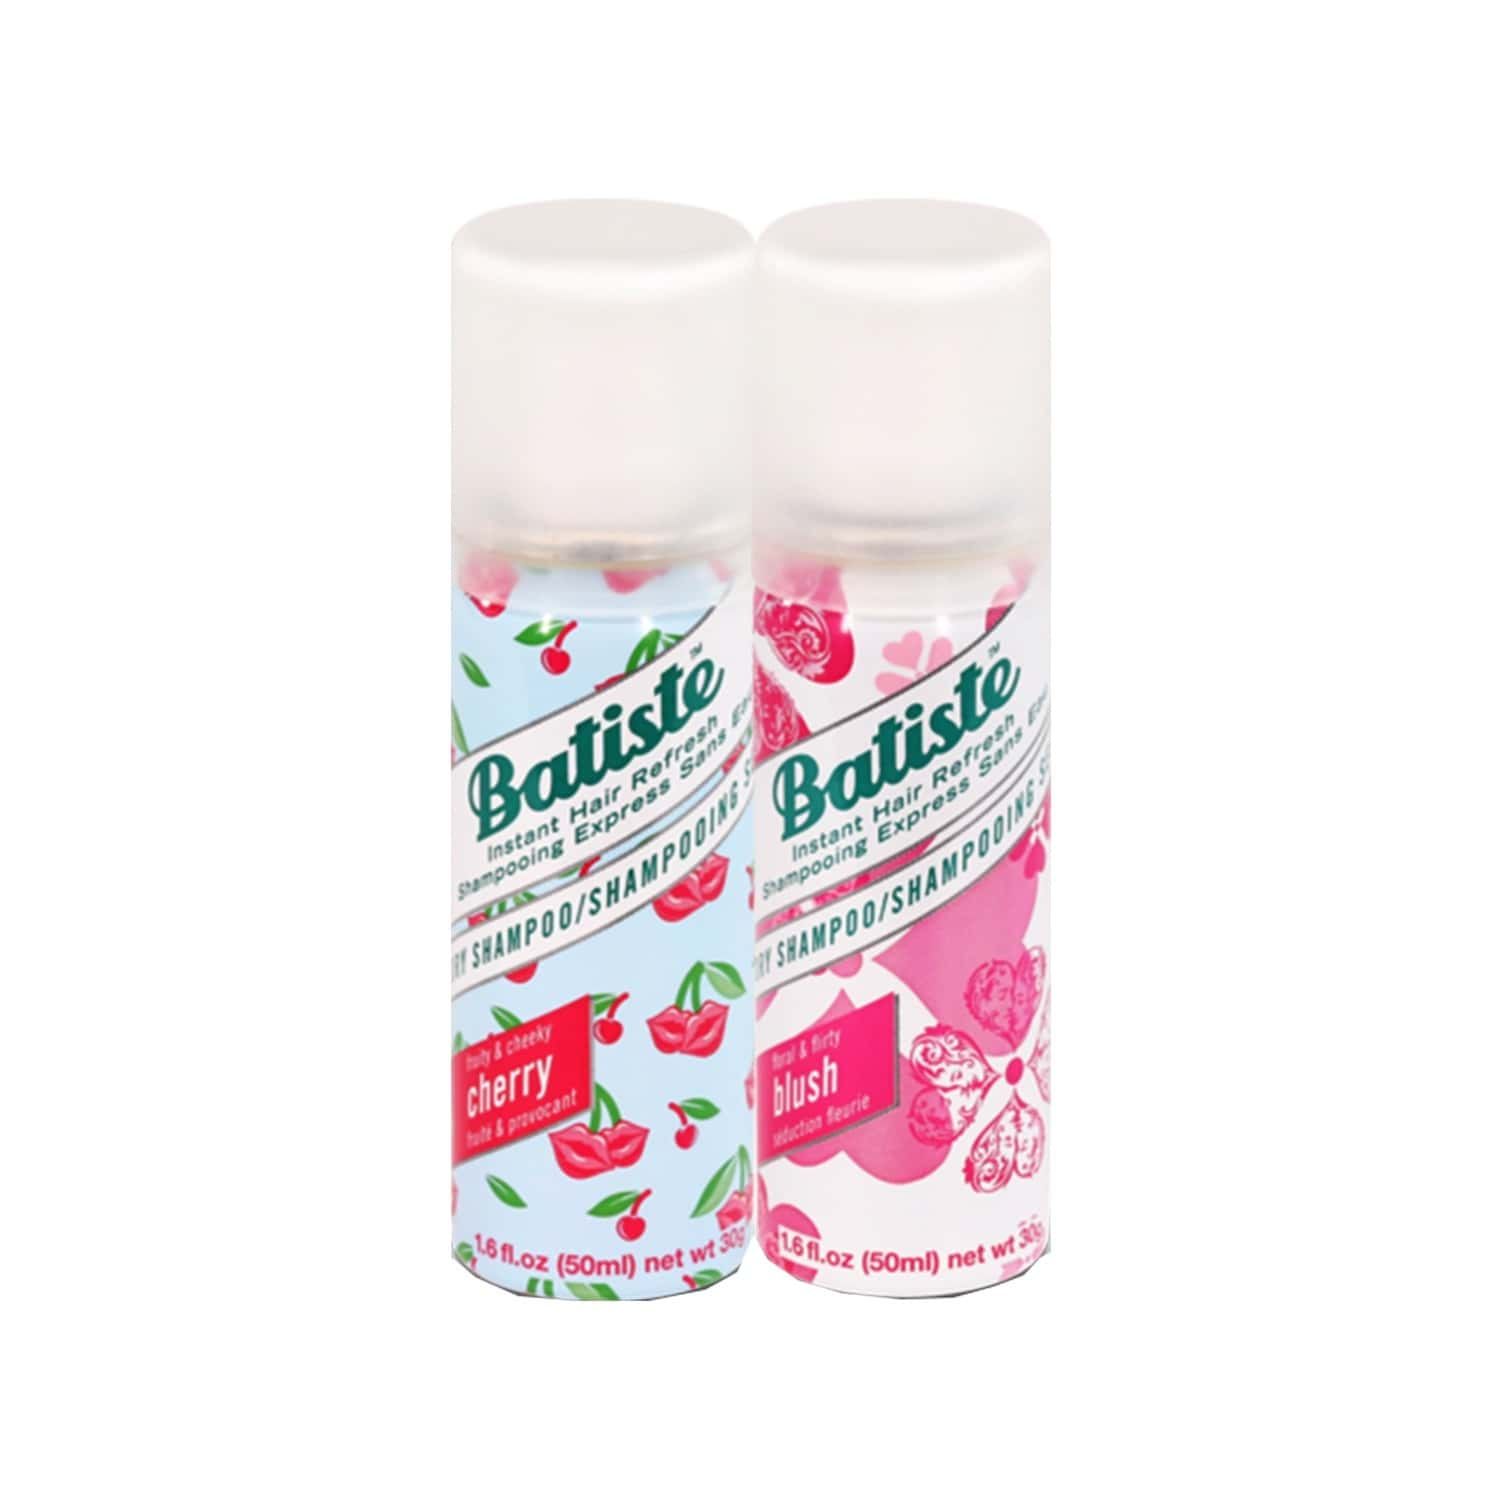 Batiste Value Kit Fruity & Cheeky Cherry, Floral & Flirty Blush Dry Shampoo - 100ml (pack Of 2 X 50ml)